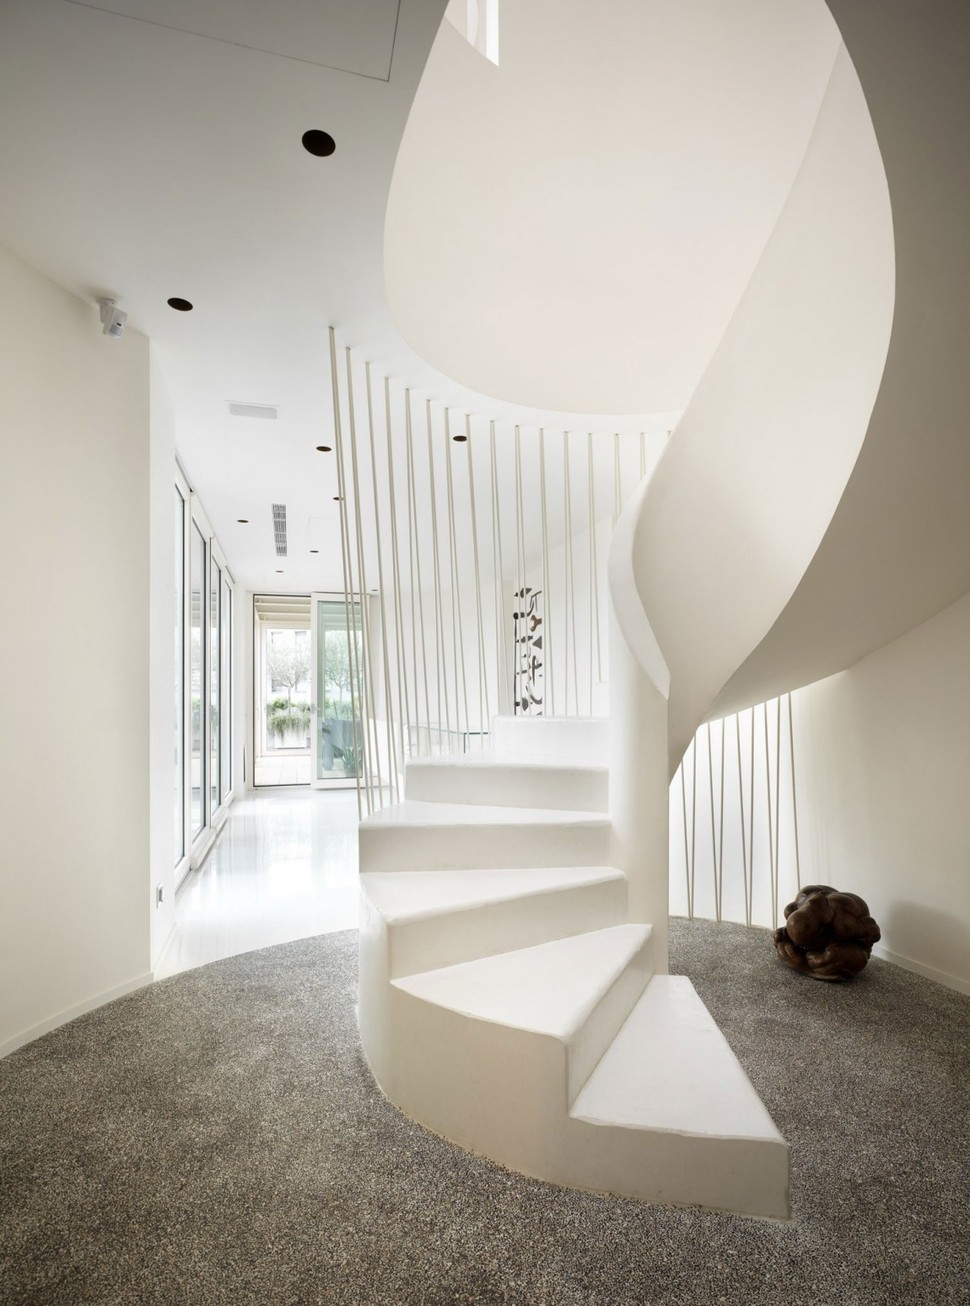 White shades define luxurious multistory milan apartment - Unique house interior ideas influenced by various world fashions ...